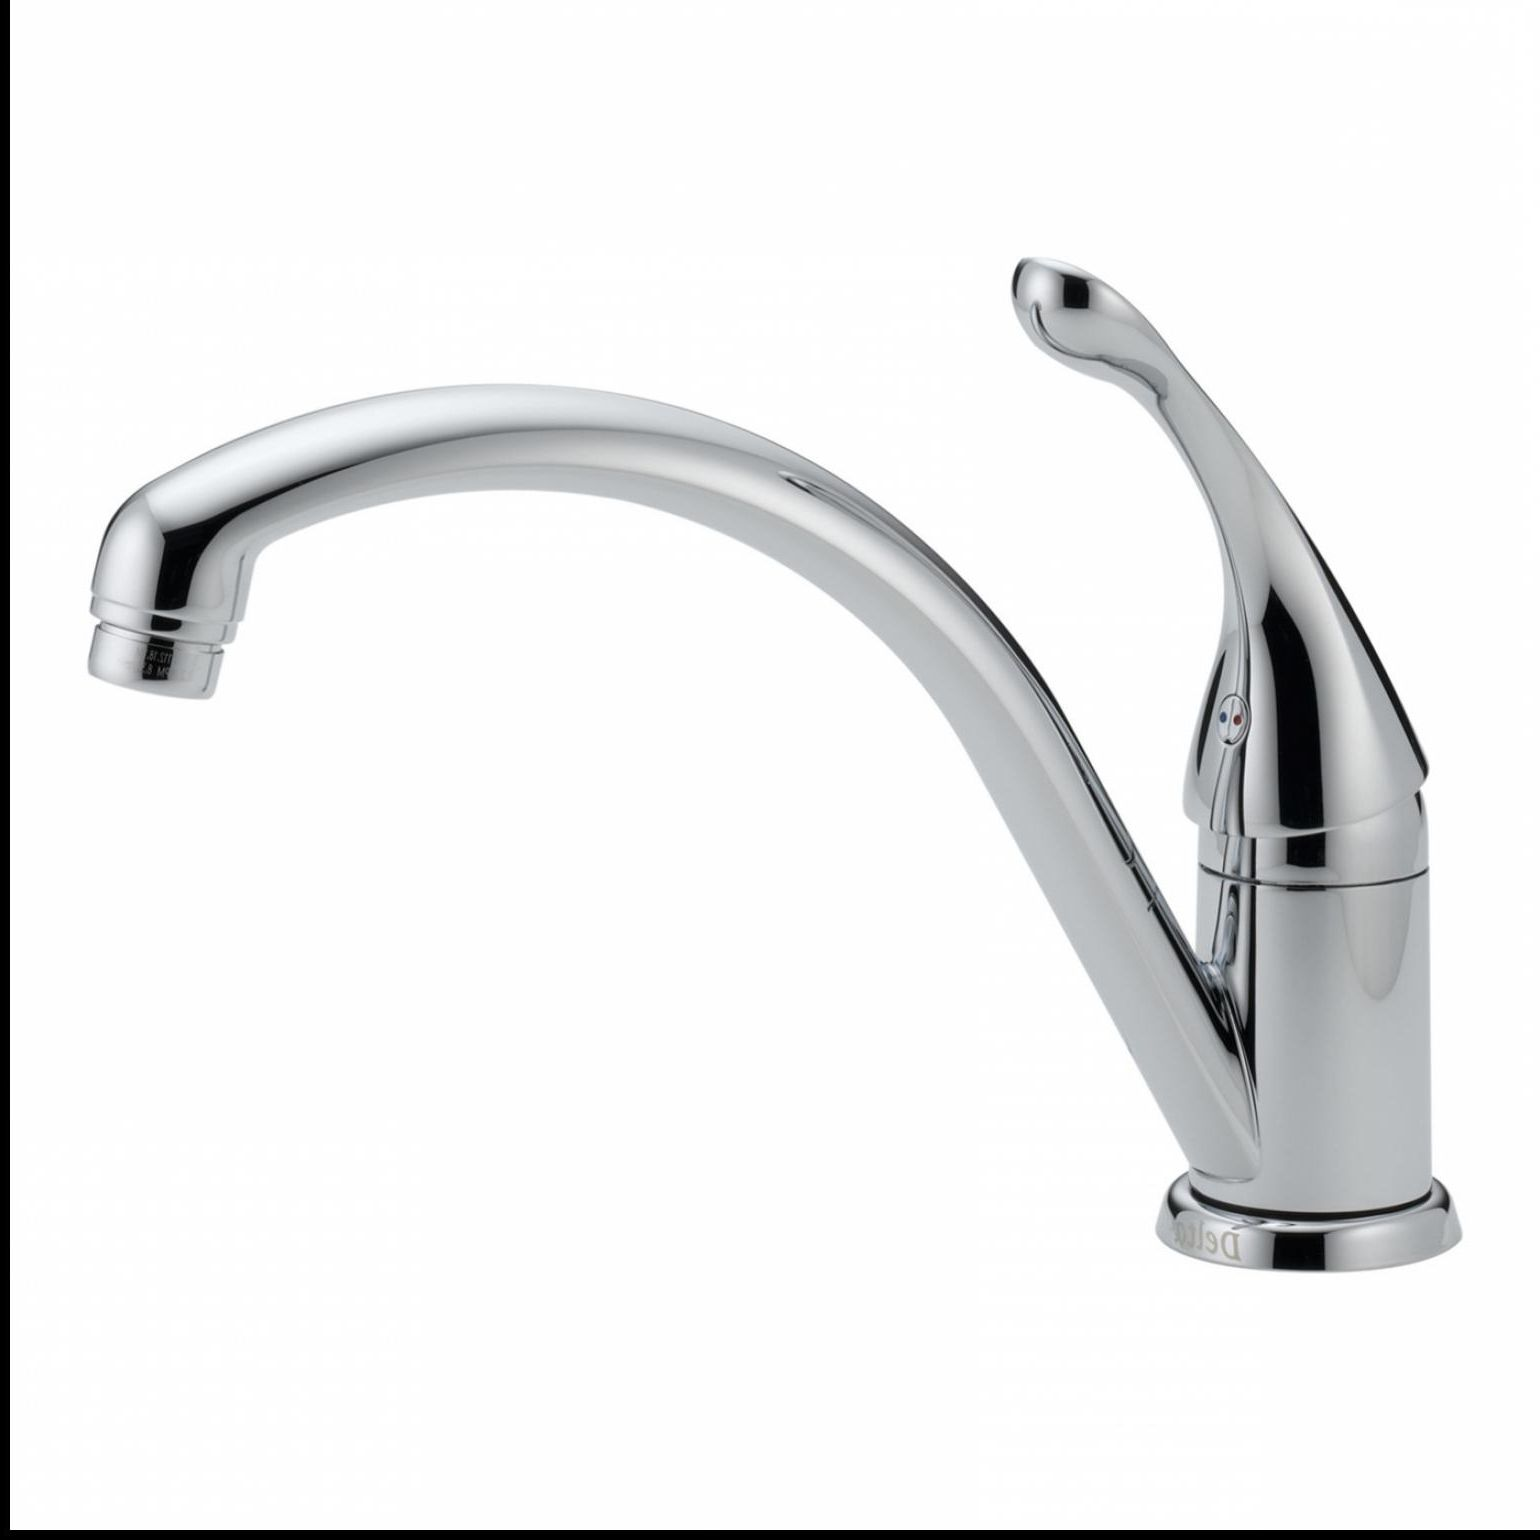 Excellent Replacing Bathroom Sink Faucet Model - Bathroom Design ...